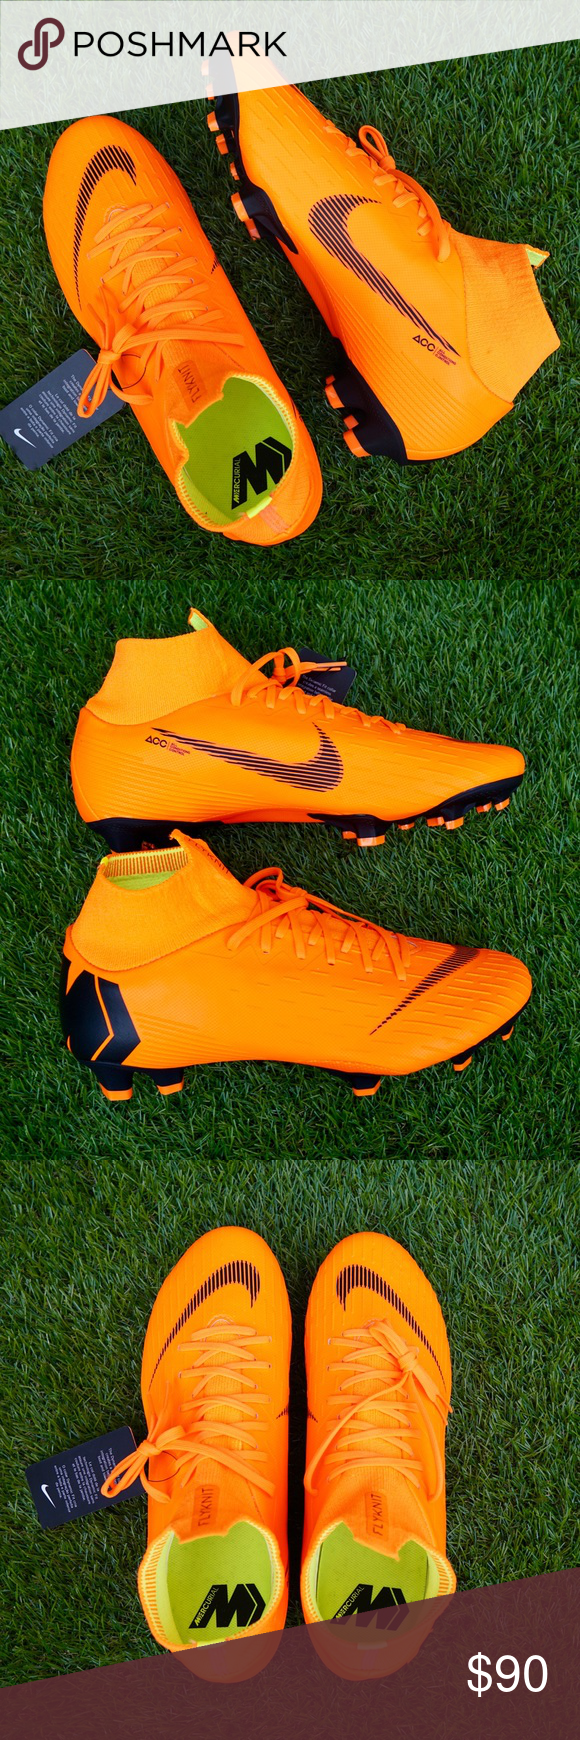 93fd20093 Nike Mercurial Superfly 6 Pro FG Soccer Cleats NEW Brand new without  original box Nike Mercurial